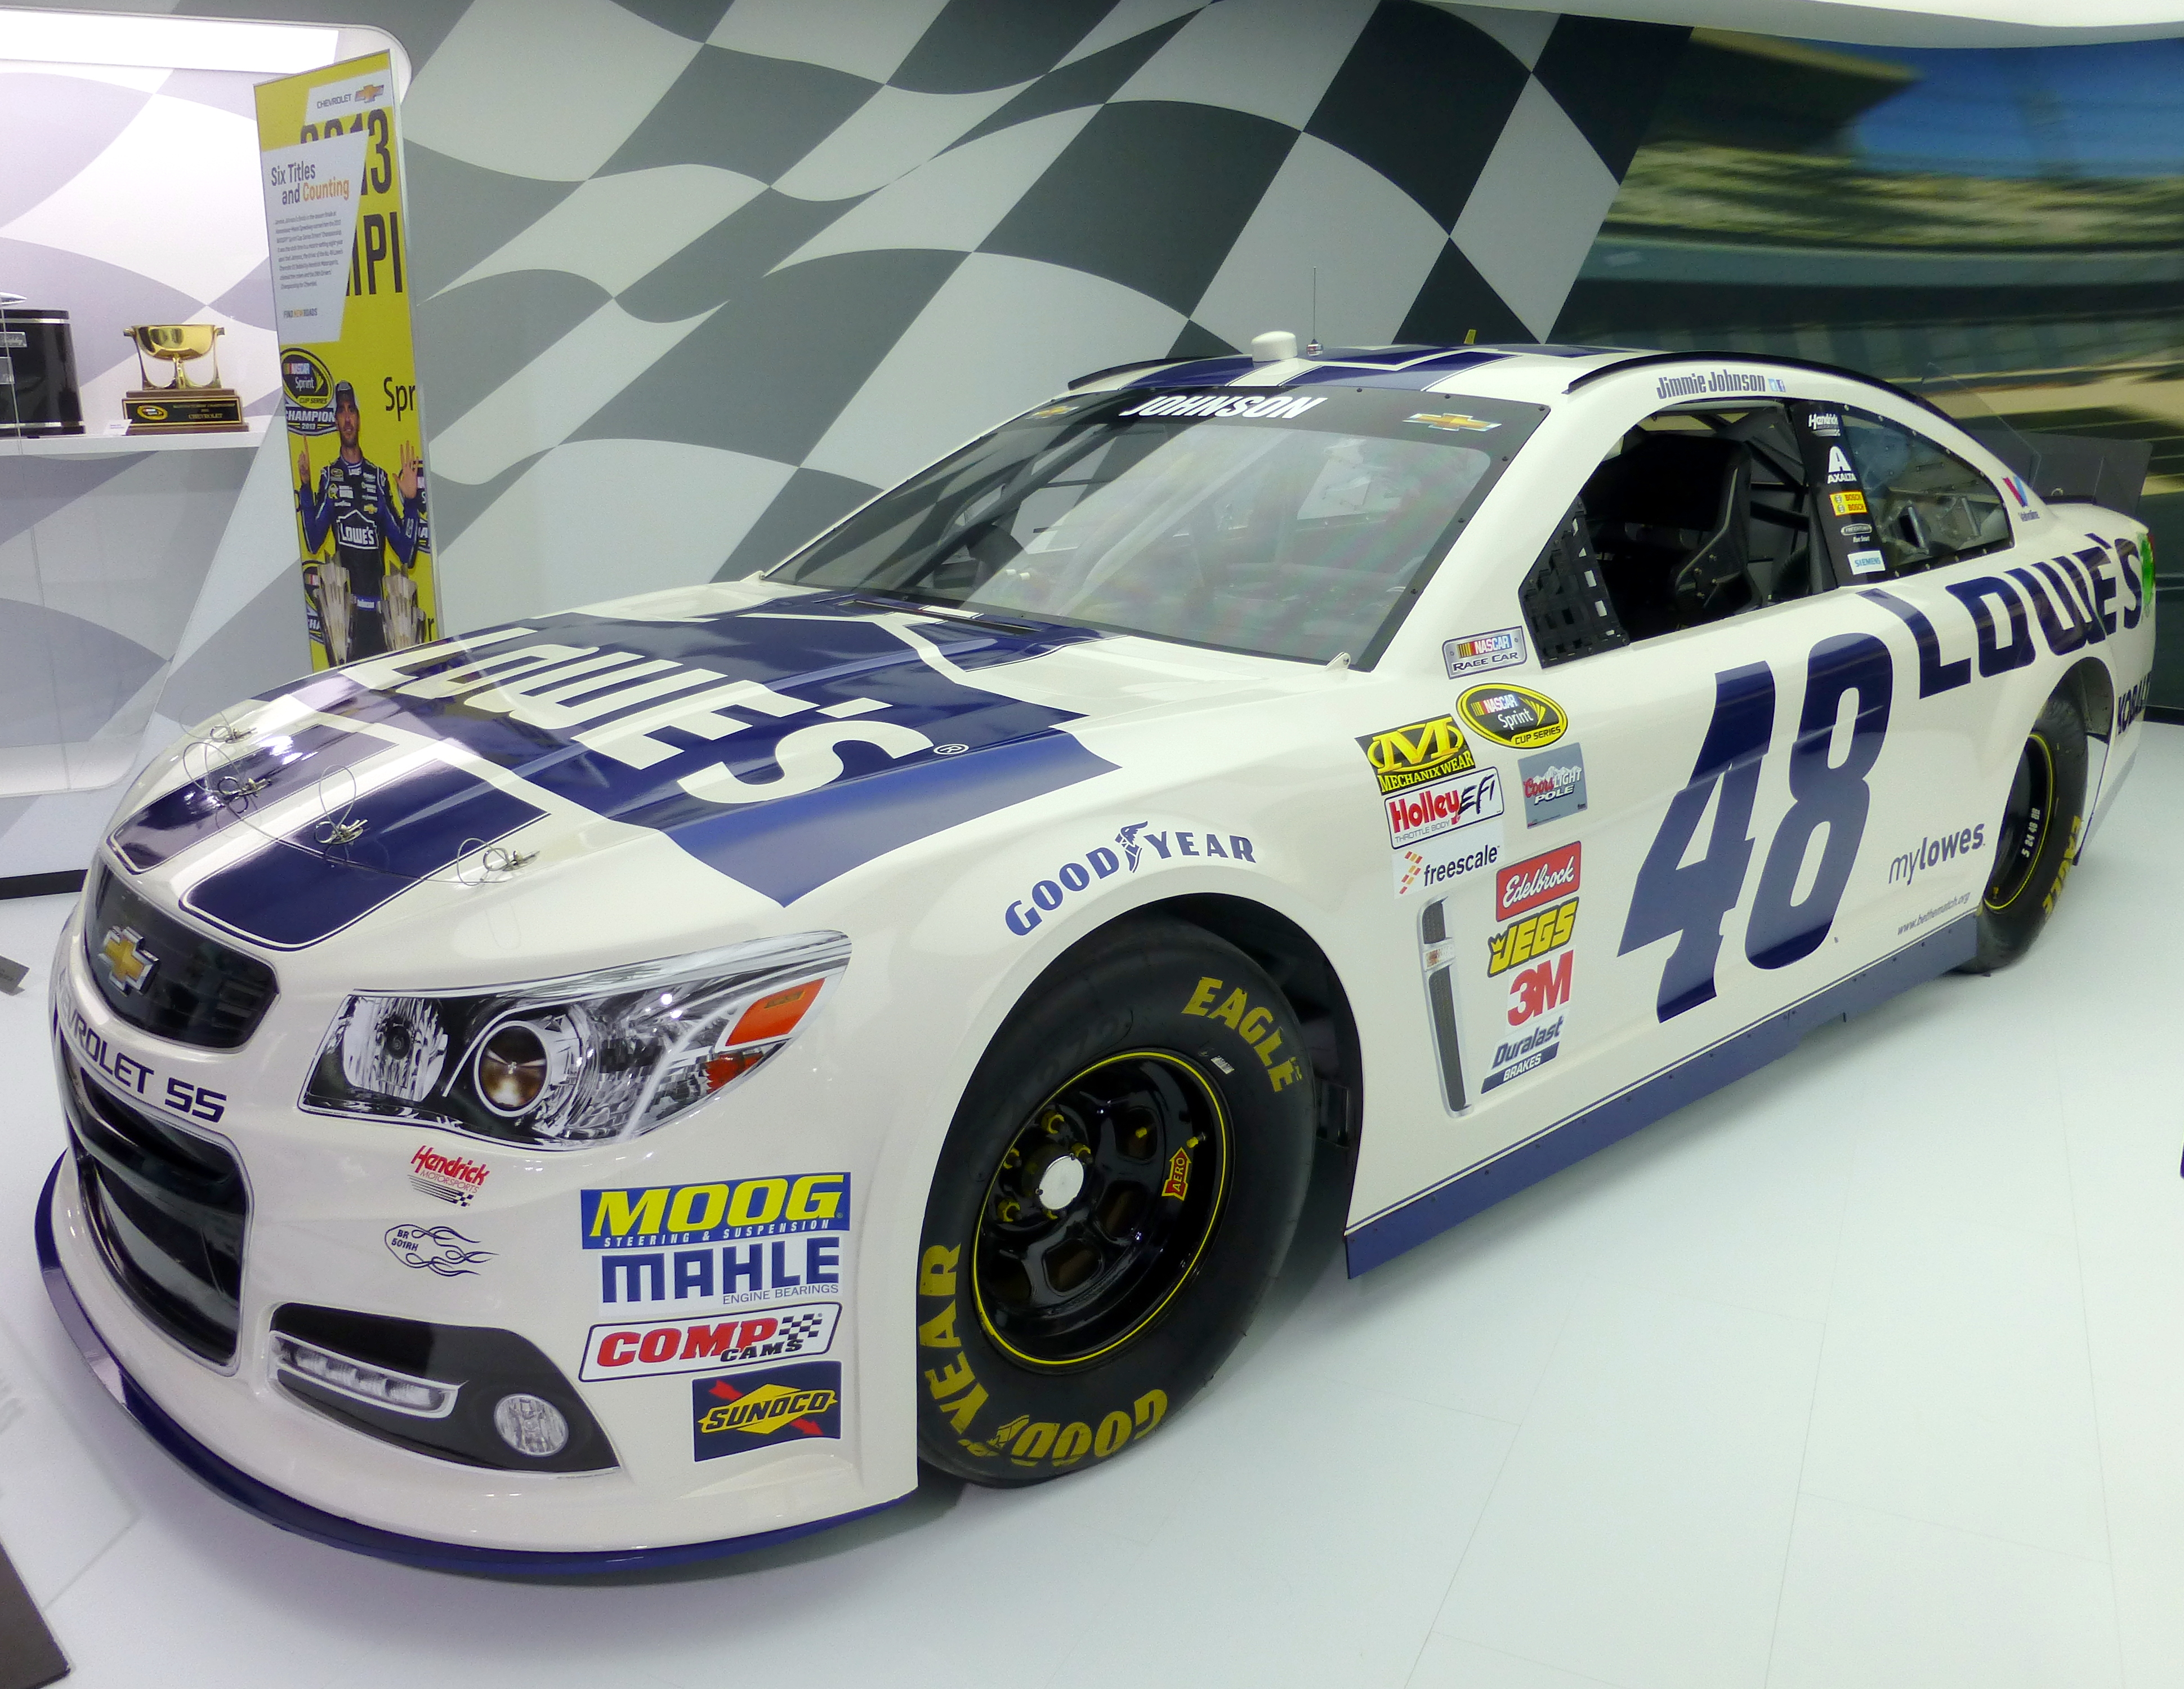 file:jimmie johnson 48 chevrolet ss - wikimedia commons